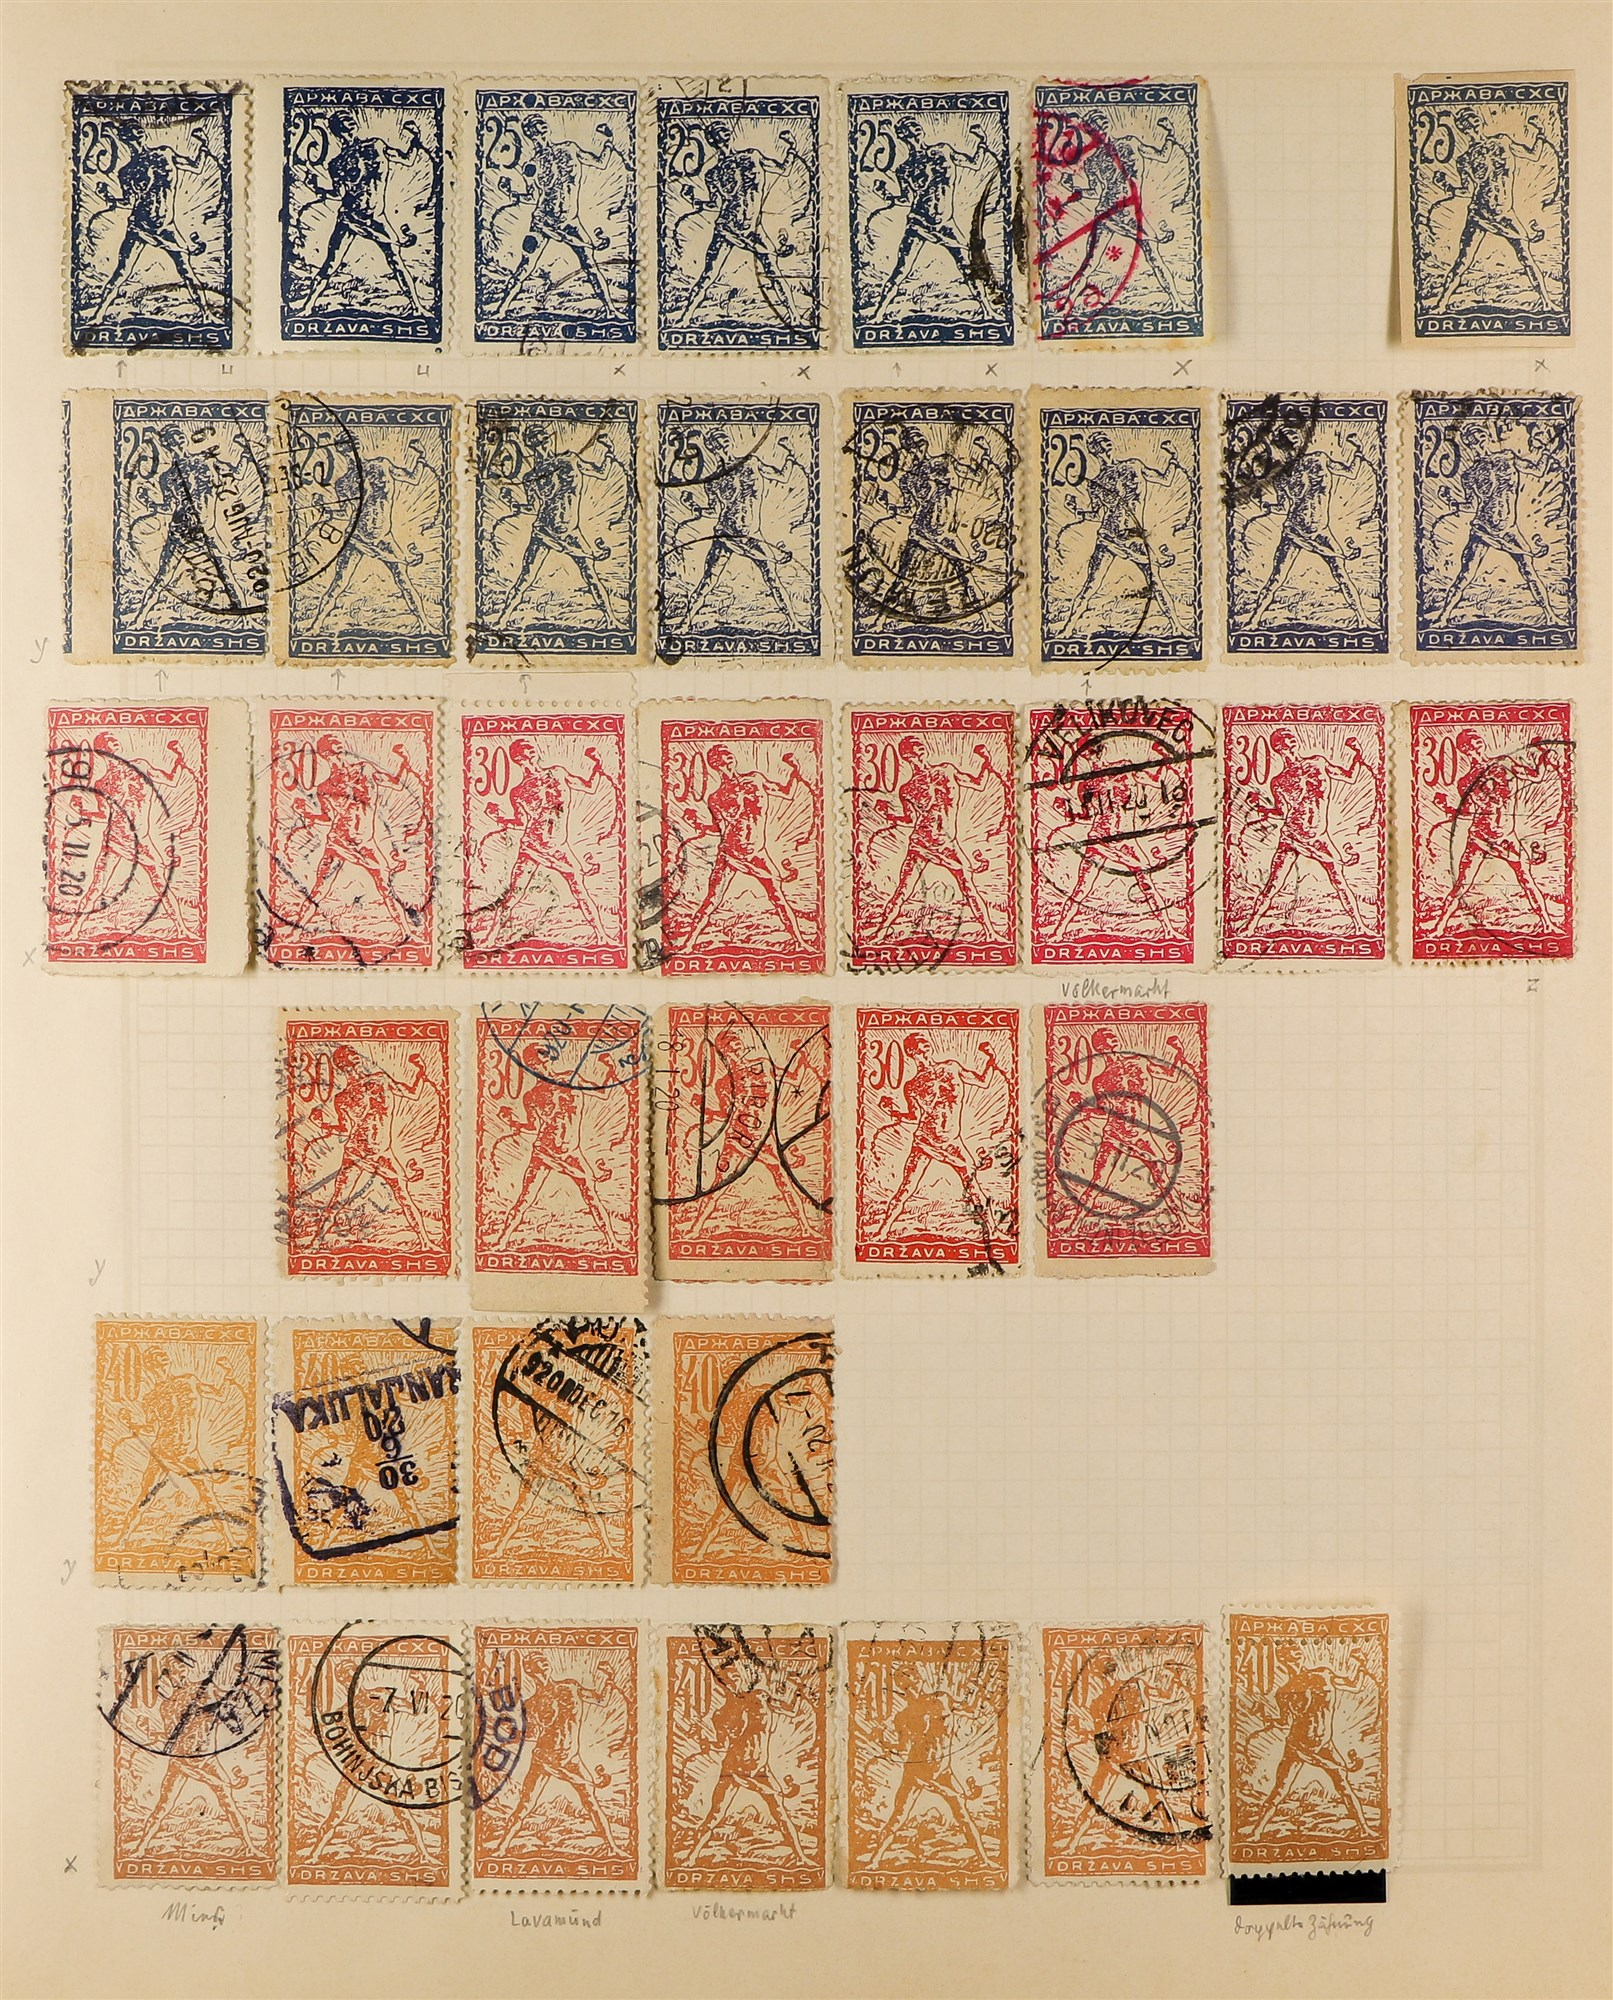 YUGOSLAVIA 1919-80 COLLECTION of mint and used issues in an album, incl. extensive Chainbreakers, - Image 2 of 17